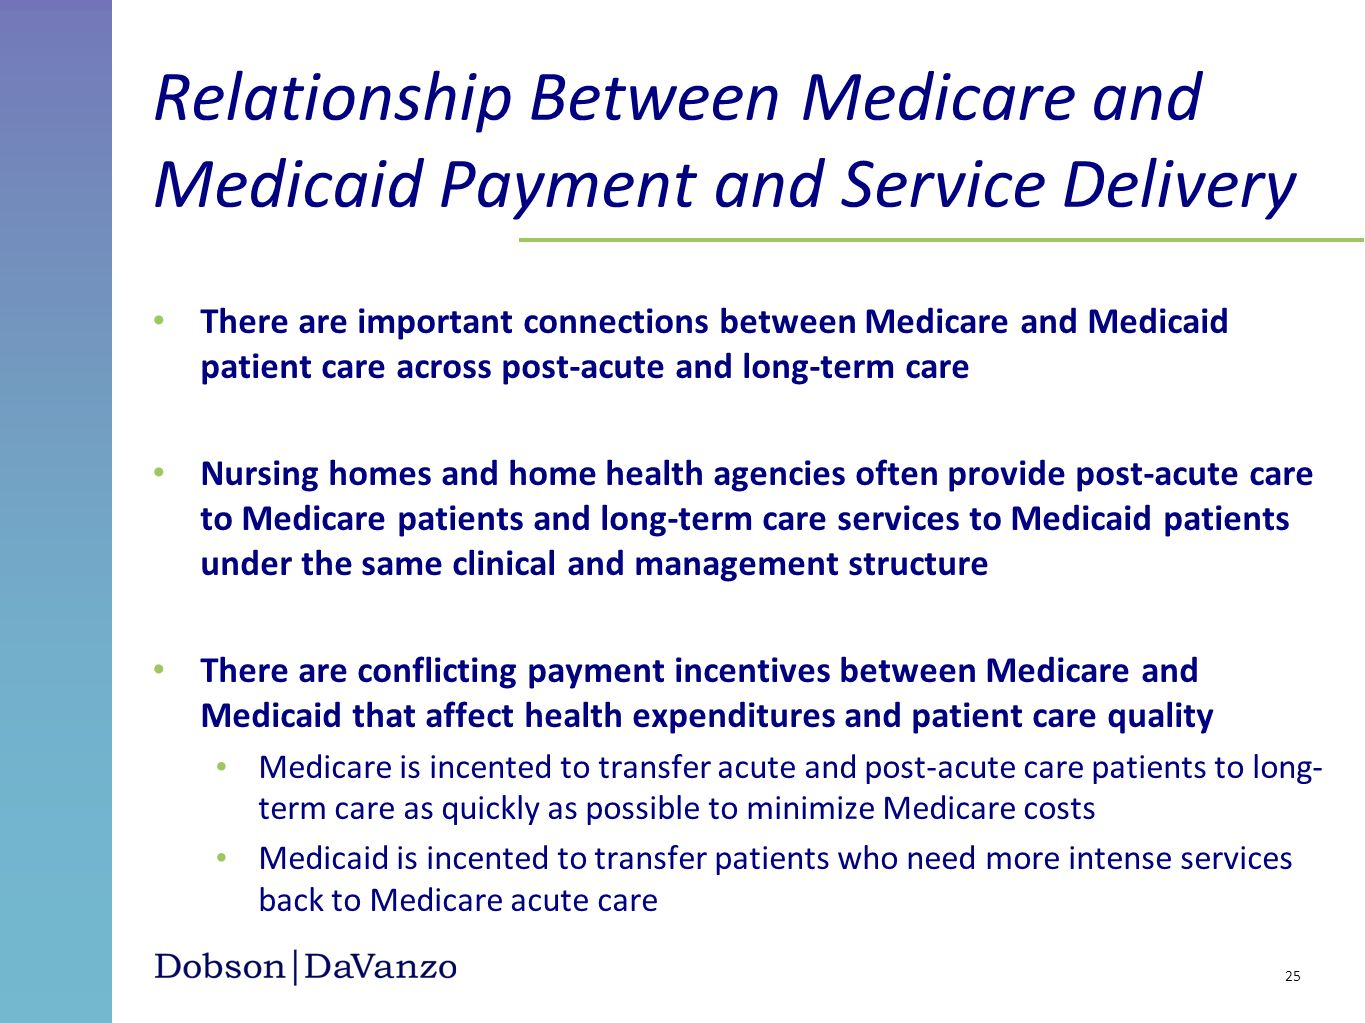 Relationship Between Medicare and Medicaid Payment and Service Delivery